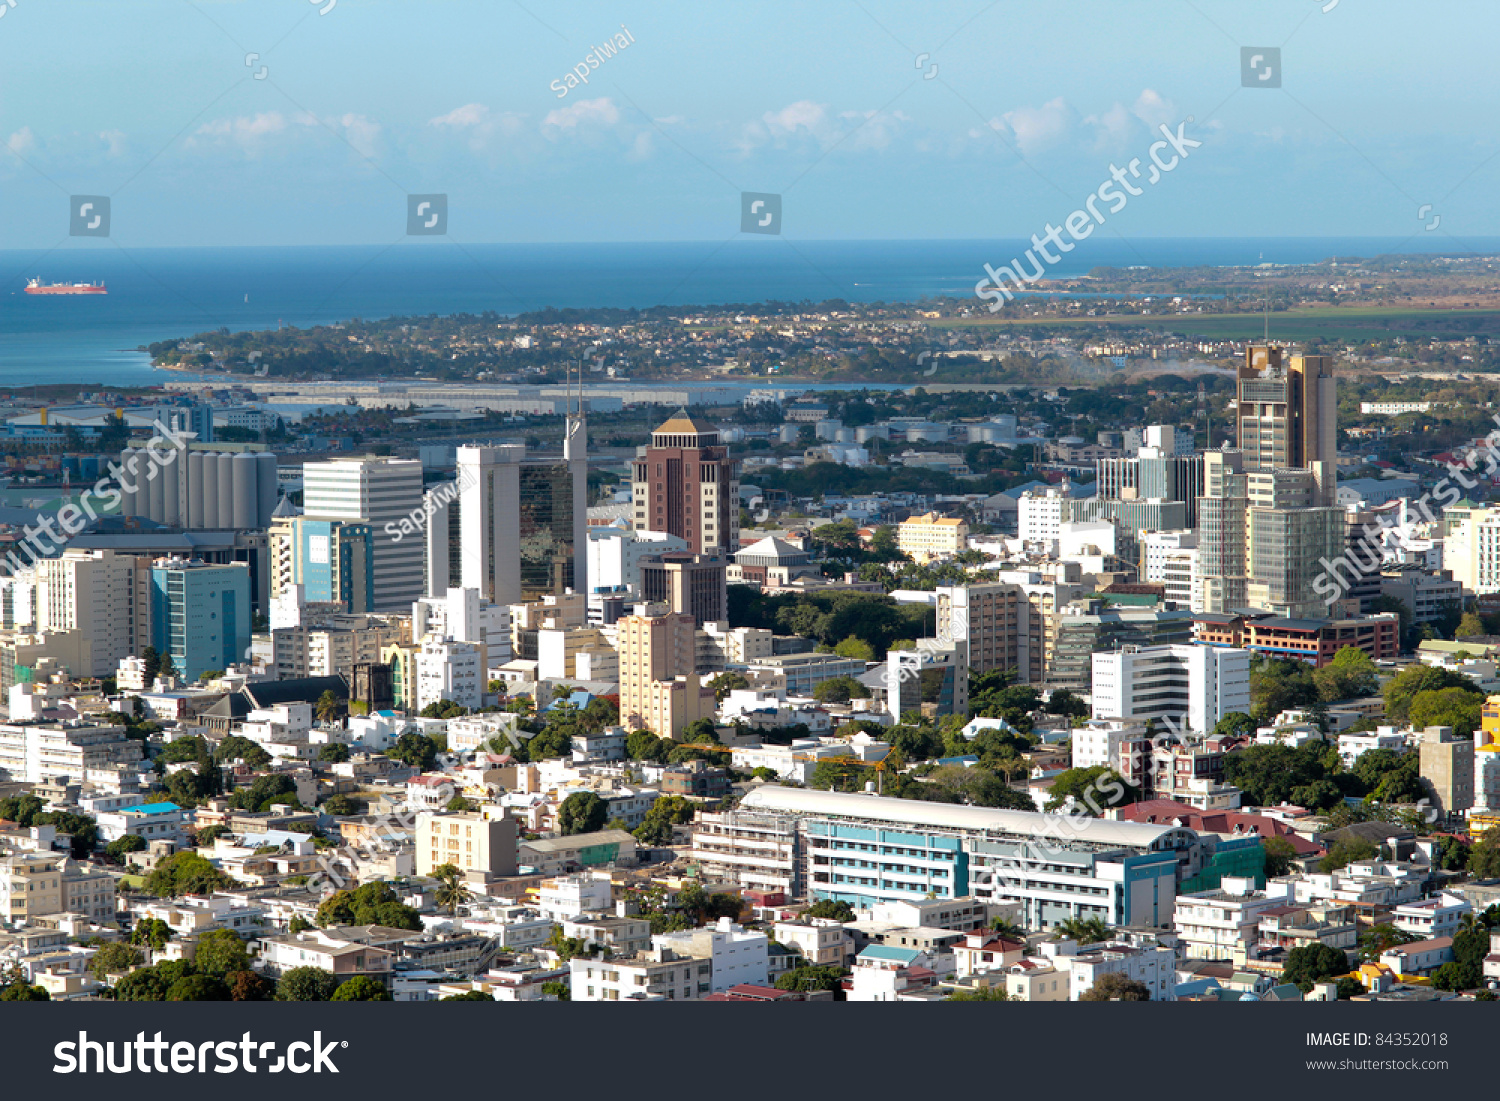 Aerial View Of Port-Louis Capital Of Mauritius Stock Photo 84352018 : Shutterstock